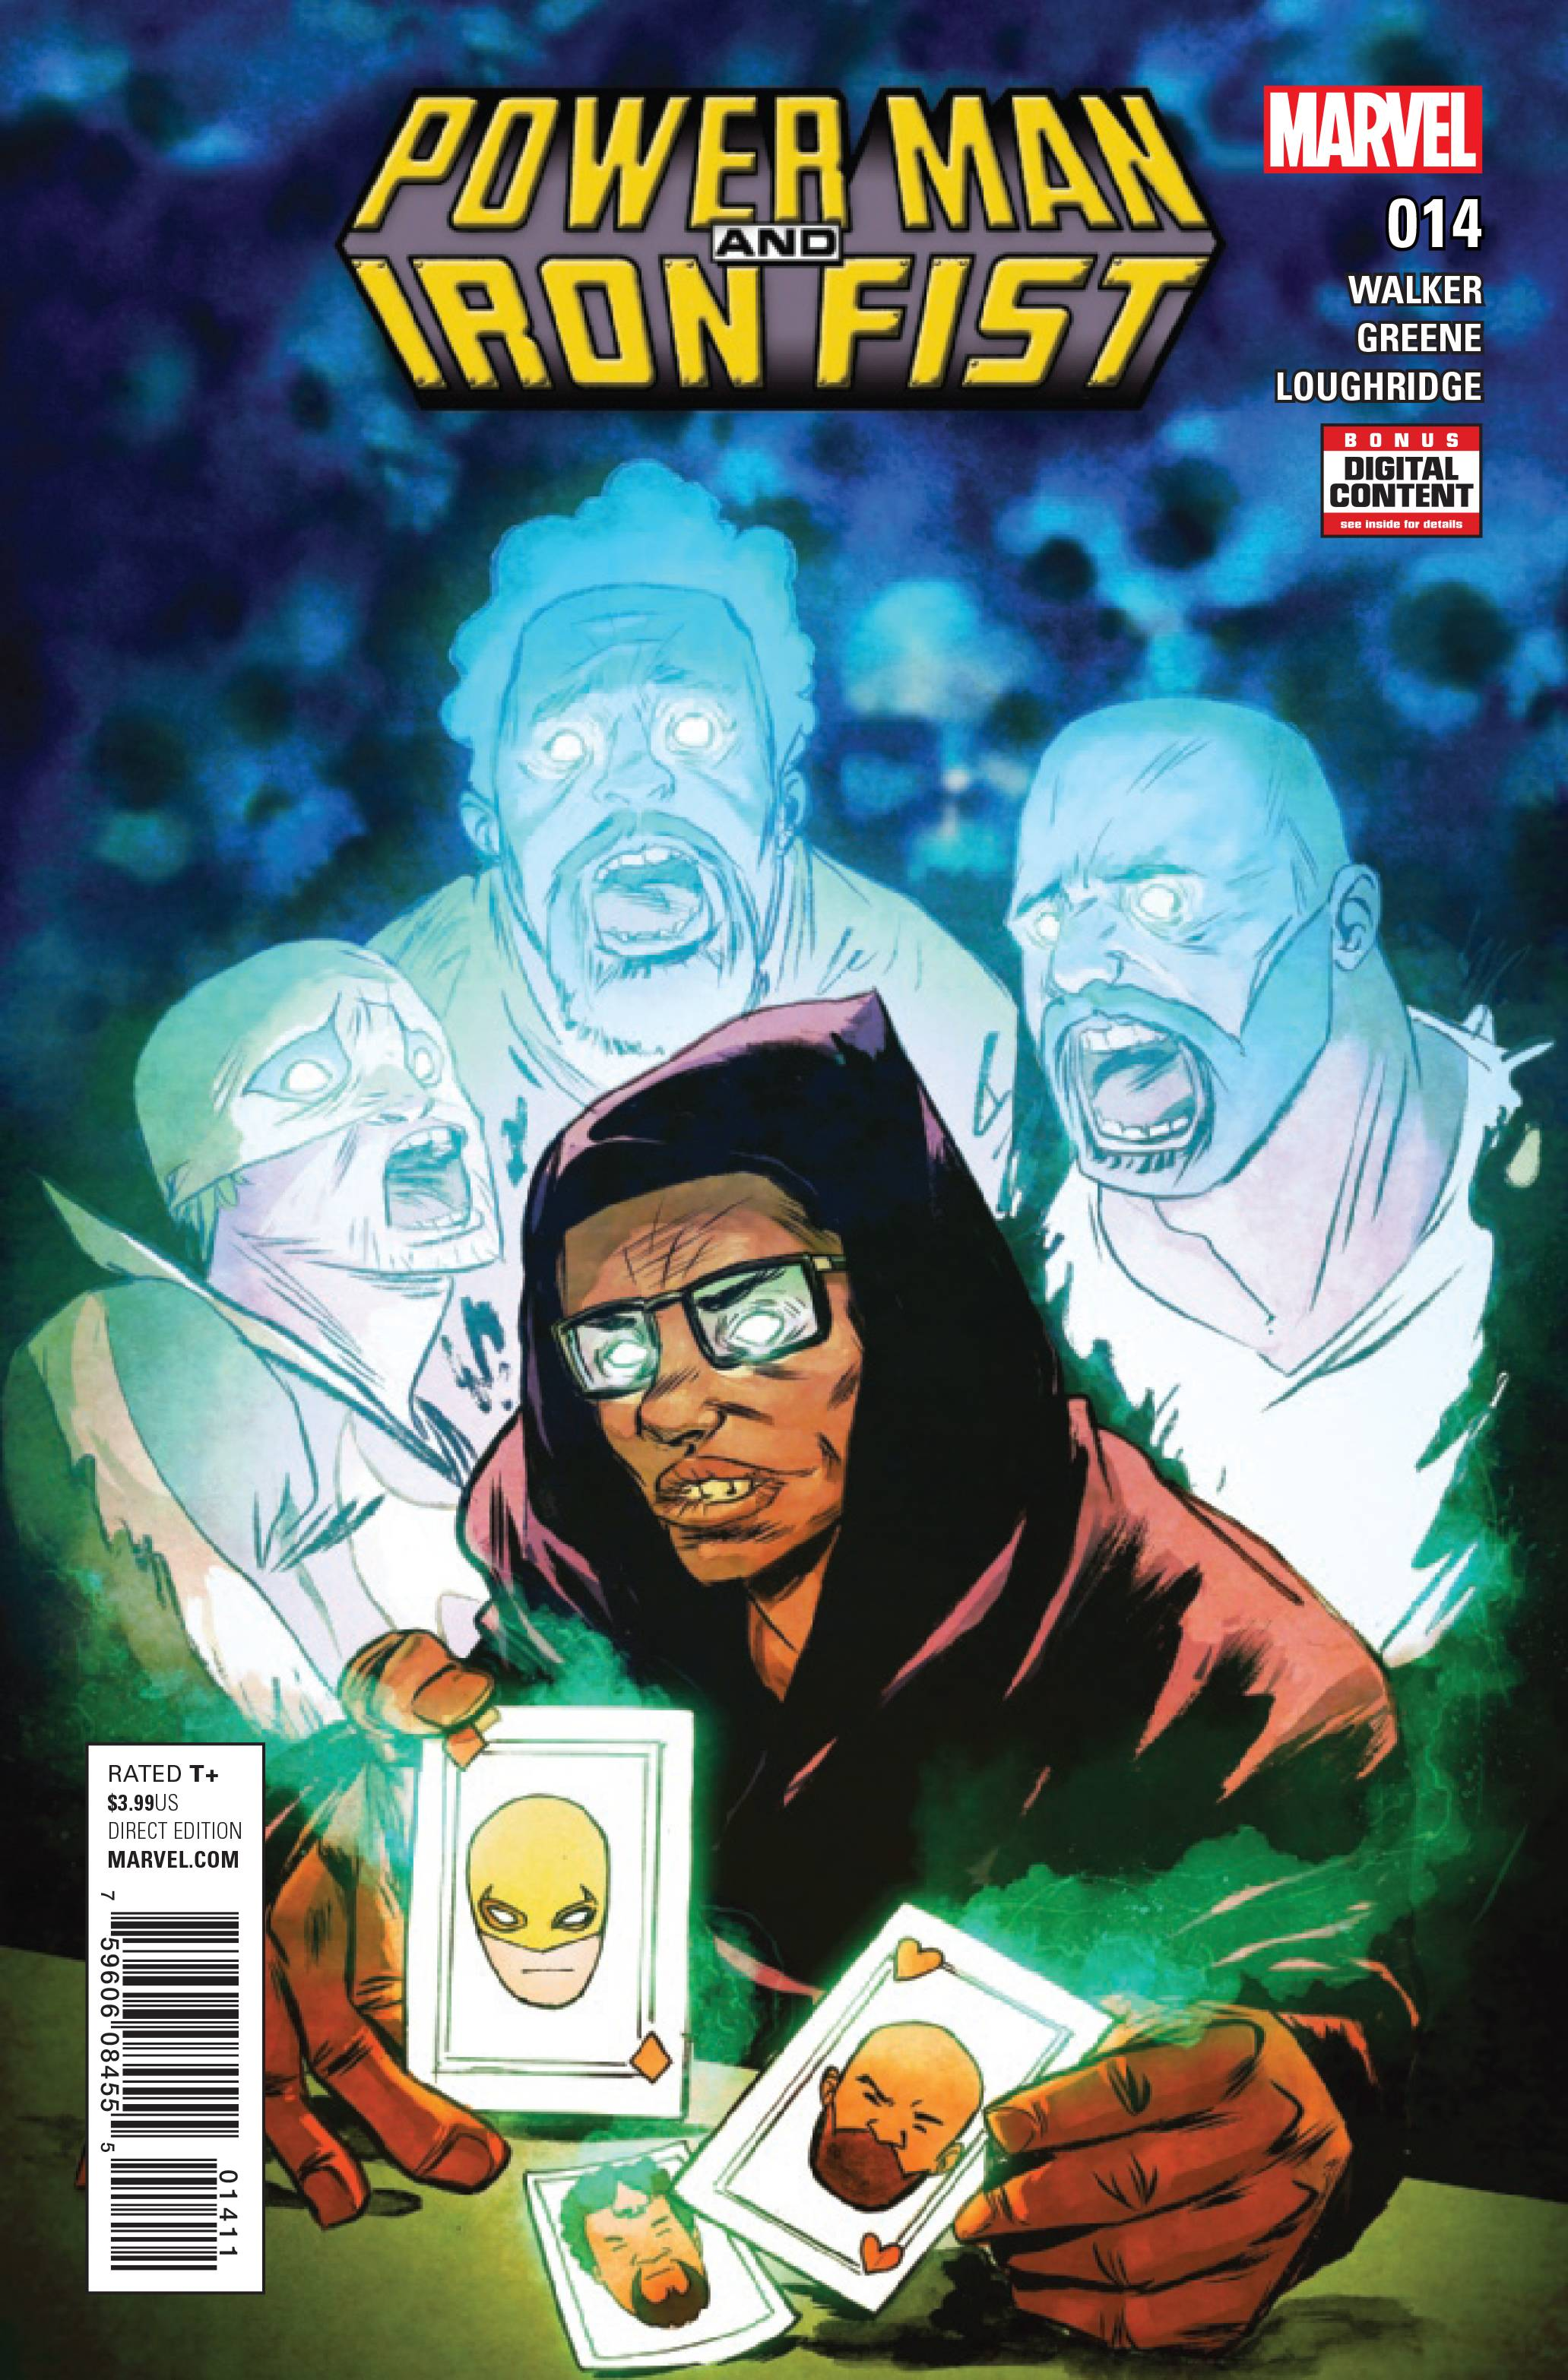 POWER MAN AND IRON FIST #14